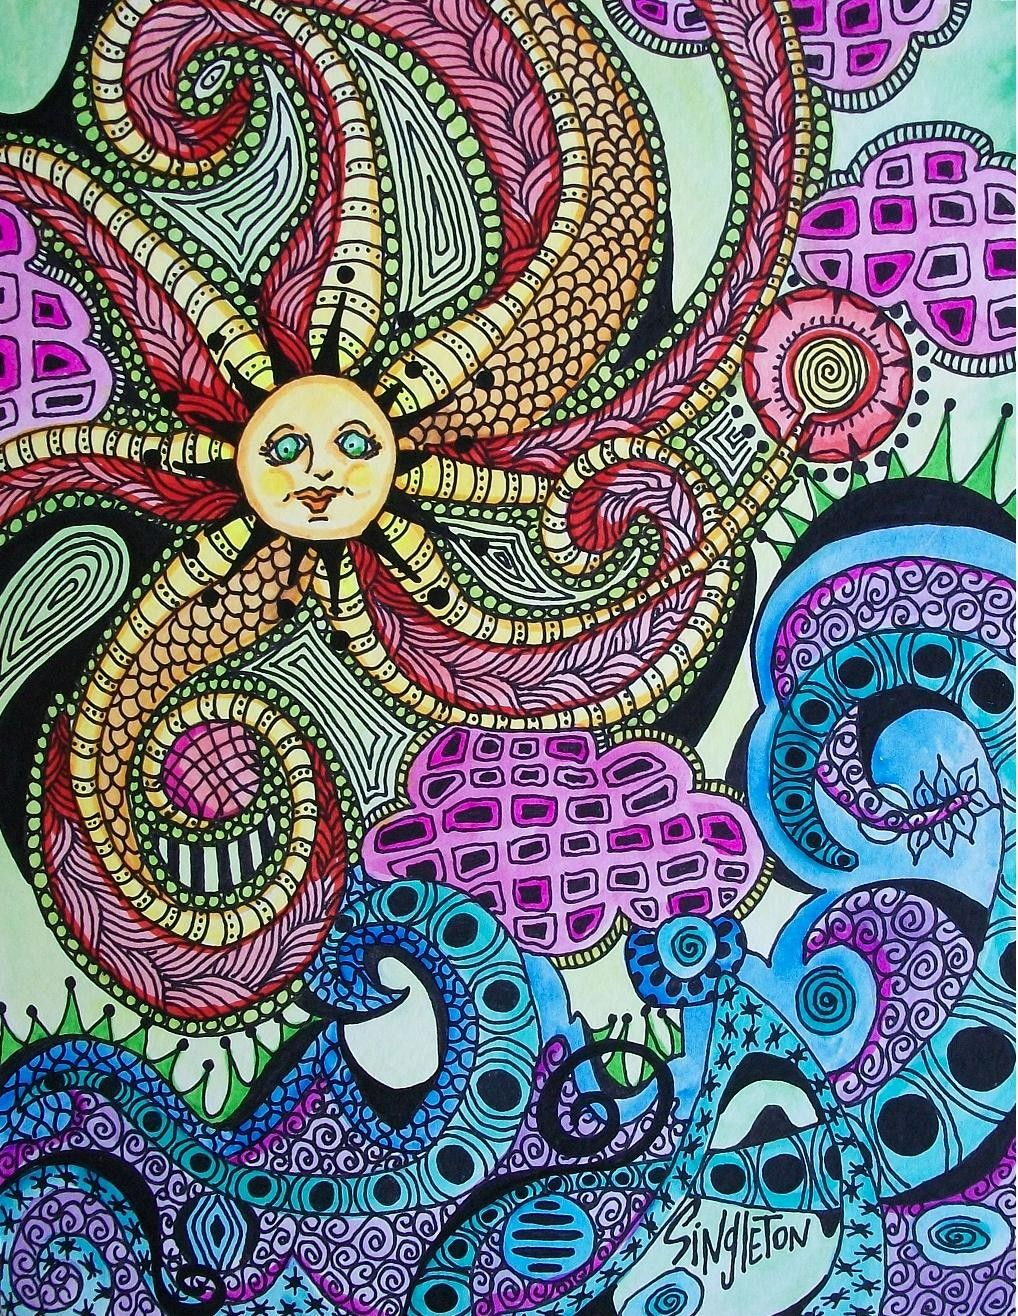 Best 25+ Hippy art ideas on Pinterest | Hippie art, Hippie ...